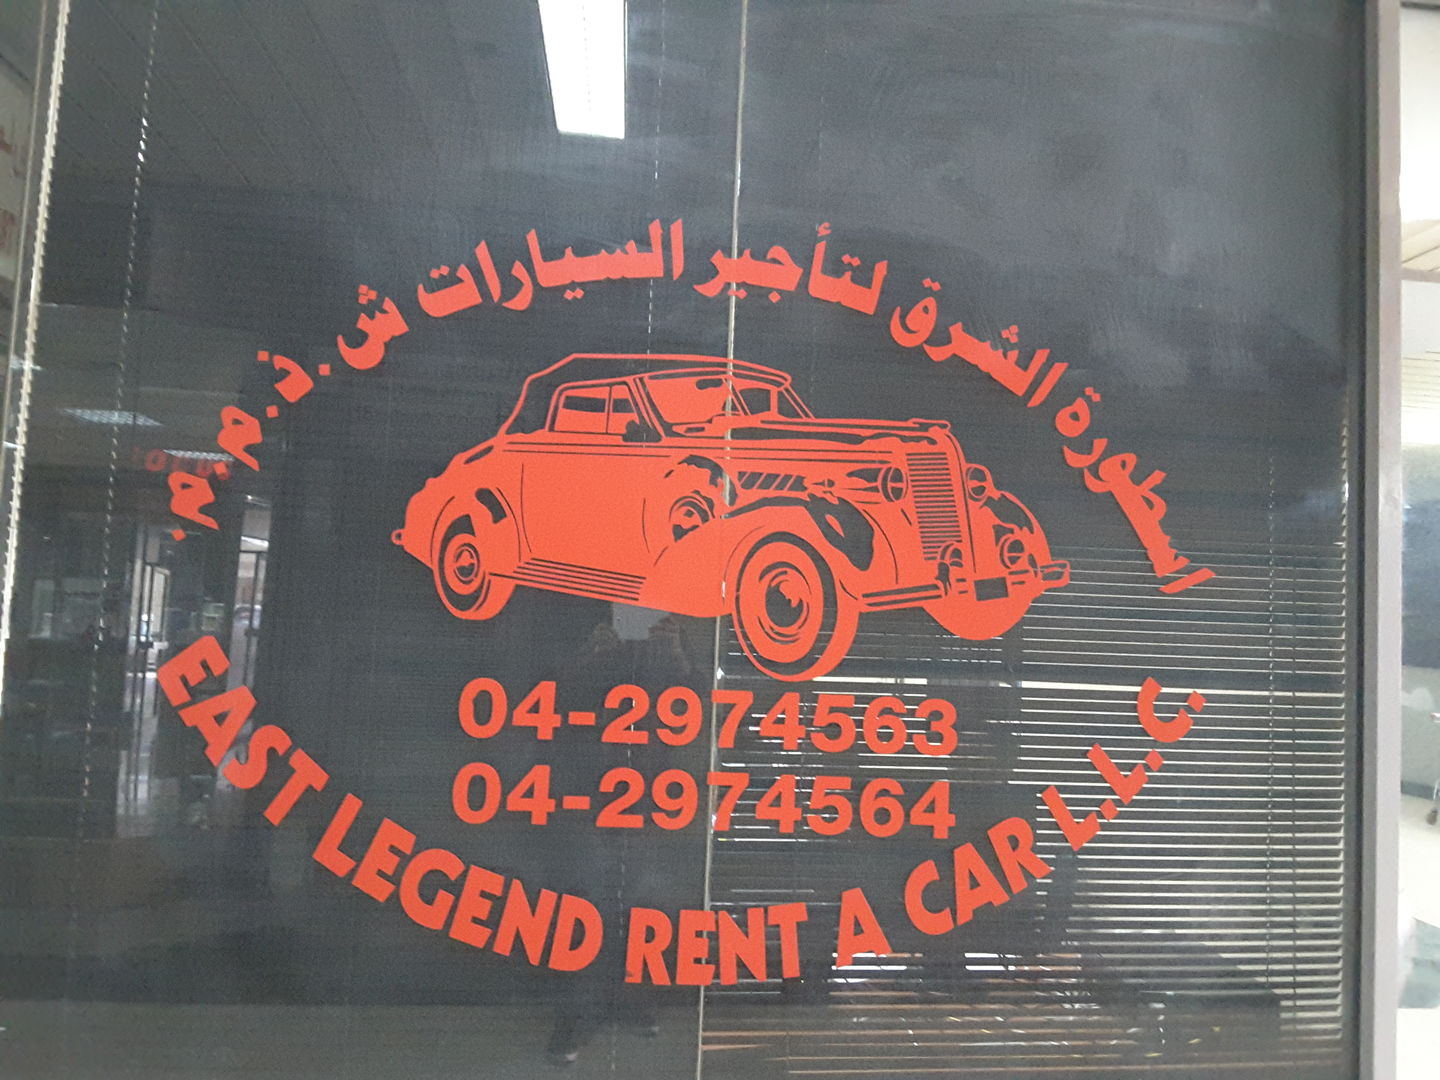 HiDubai-business-east-legend-rent-a-car-transport-vehicle-services-car-rental-services-al-khabaisi-dubai-2